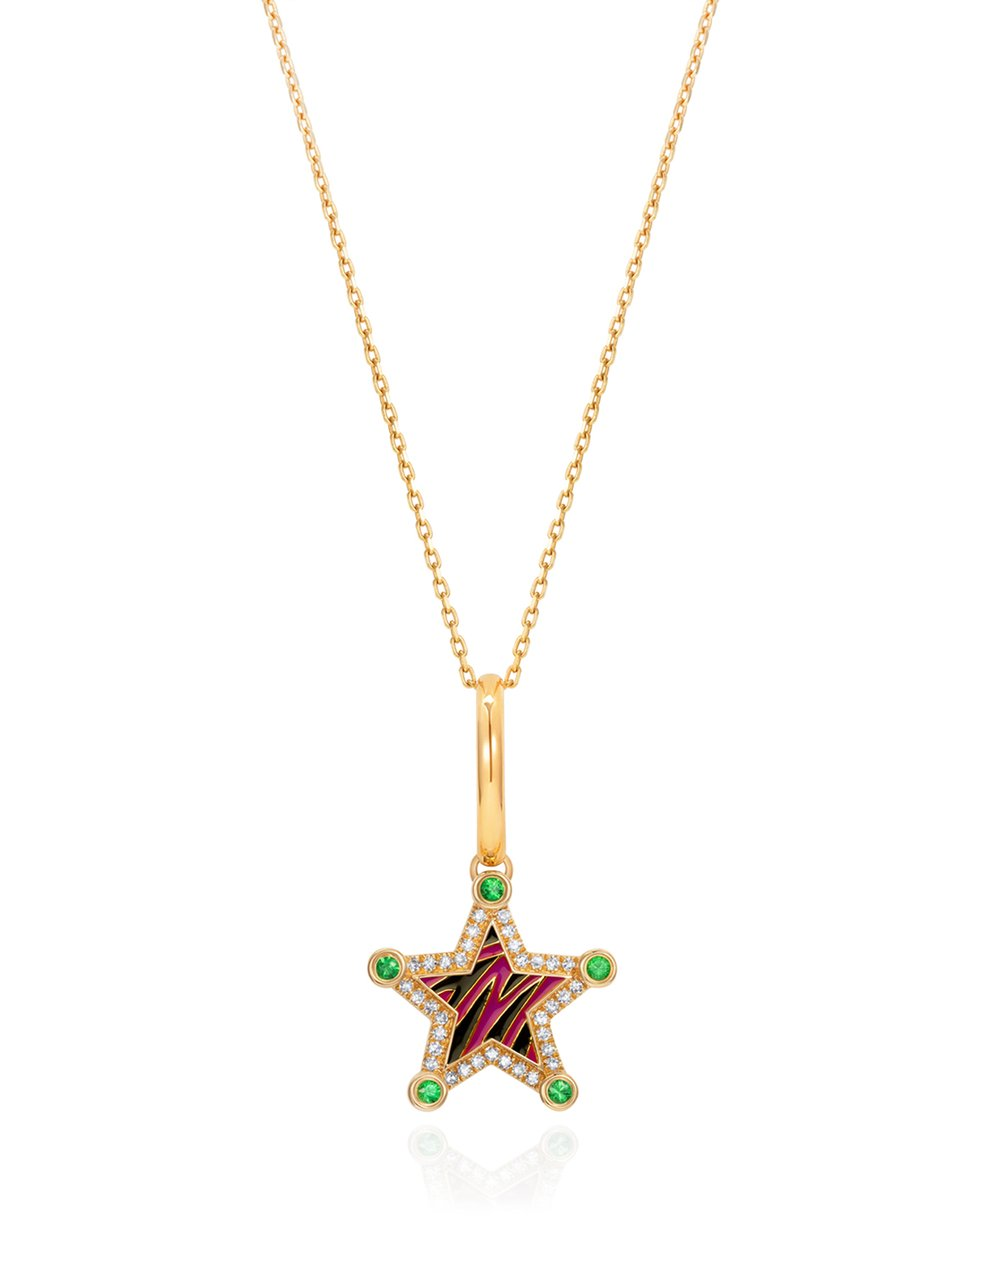 Show and Tell – Ready 2 embrace mini pendant